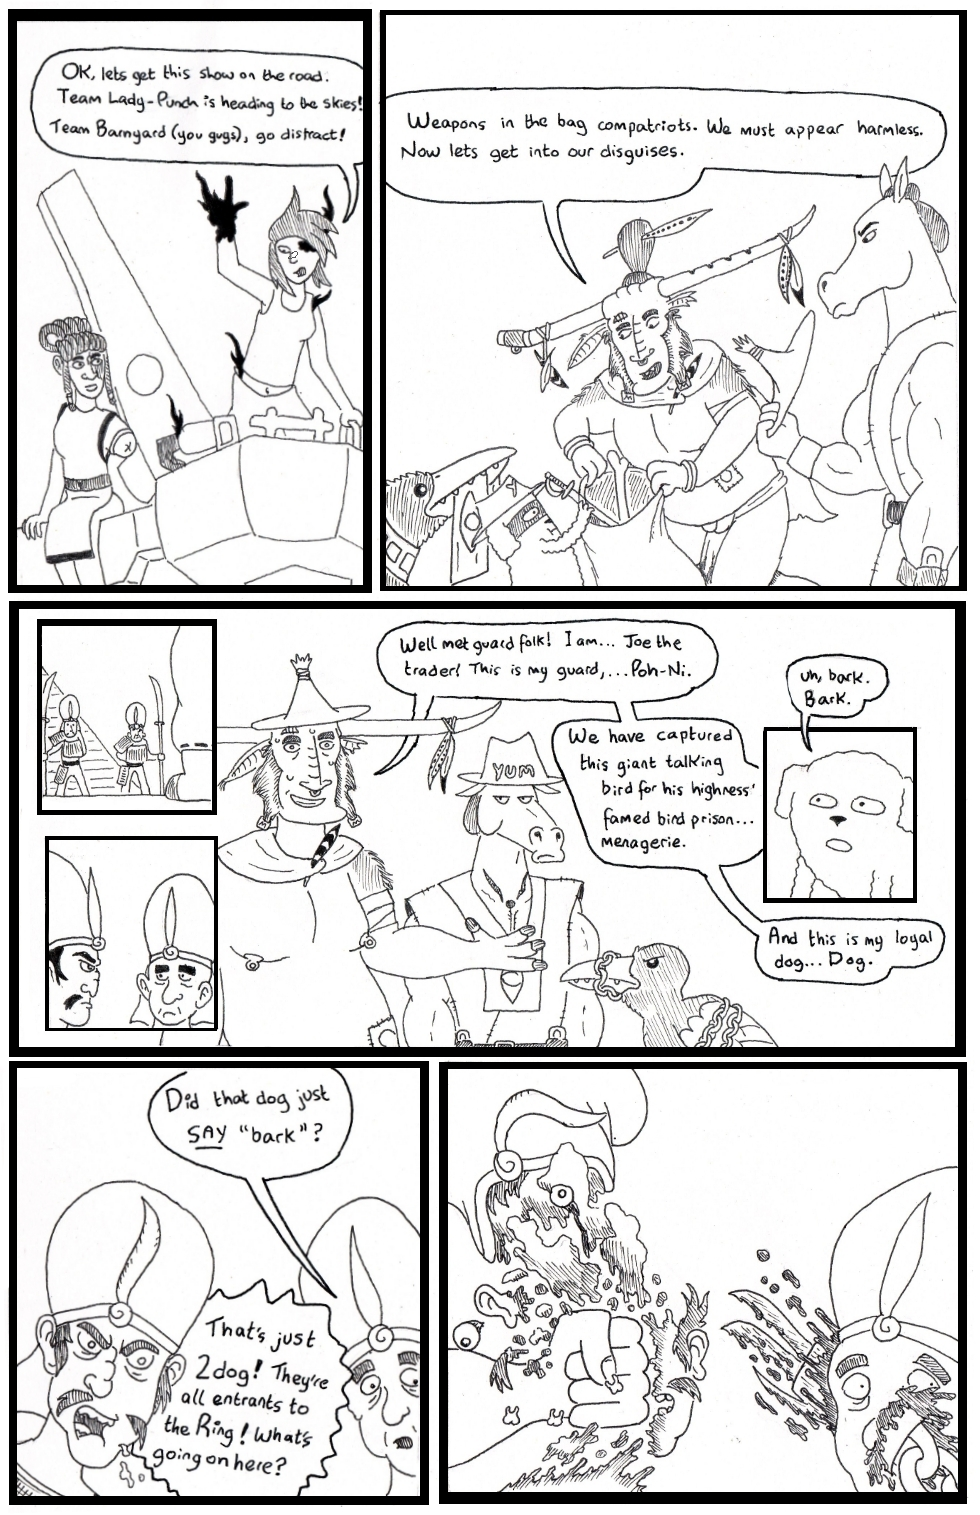 this round also has the highest bodycount by far of all my tourney comics